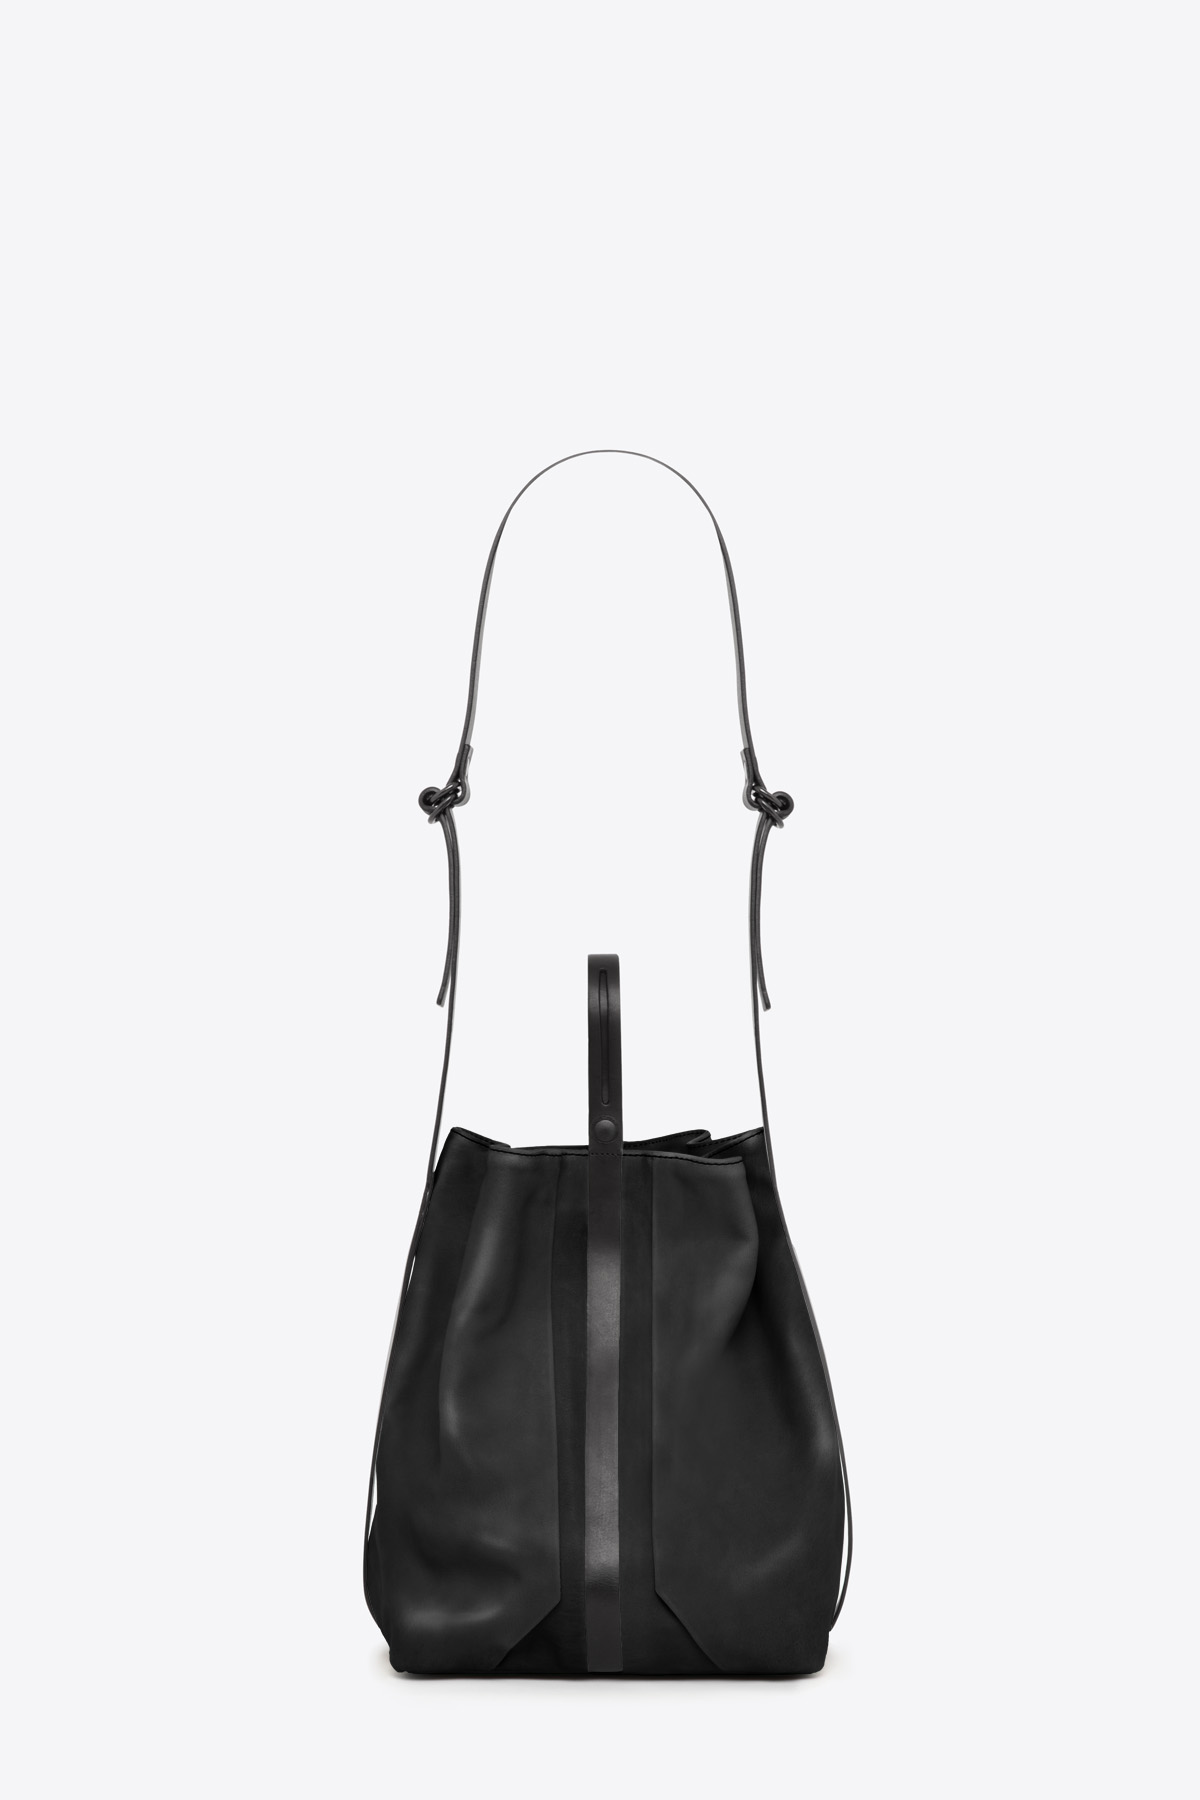 dclr010-bucketbag-a1-black-back